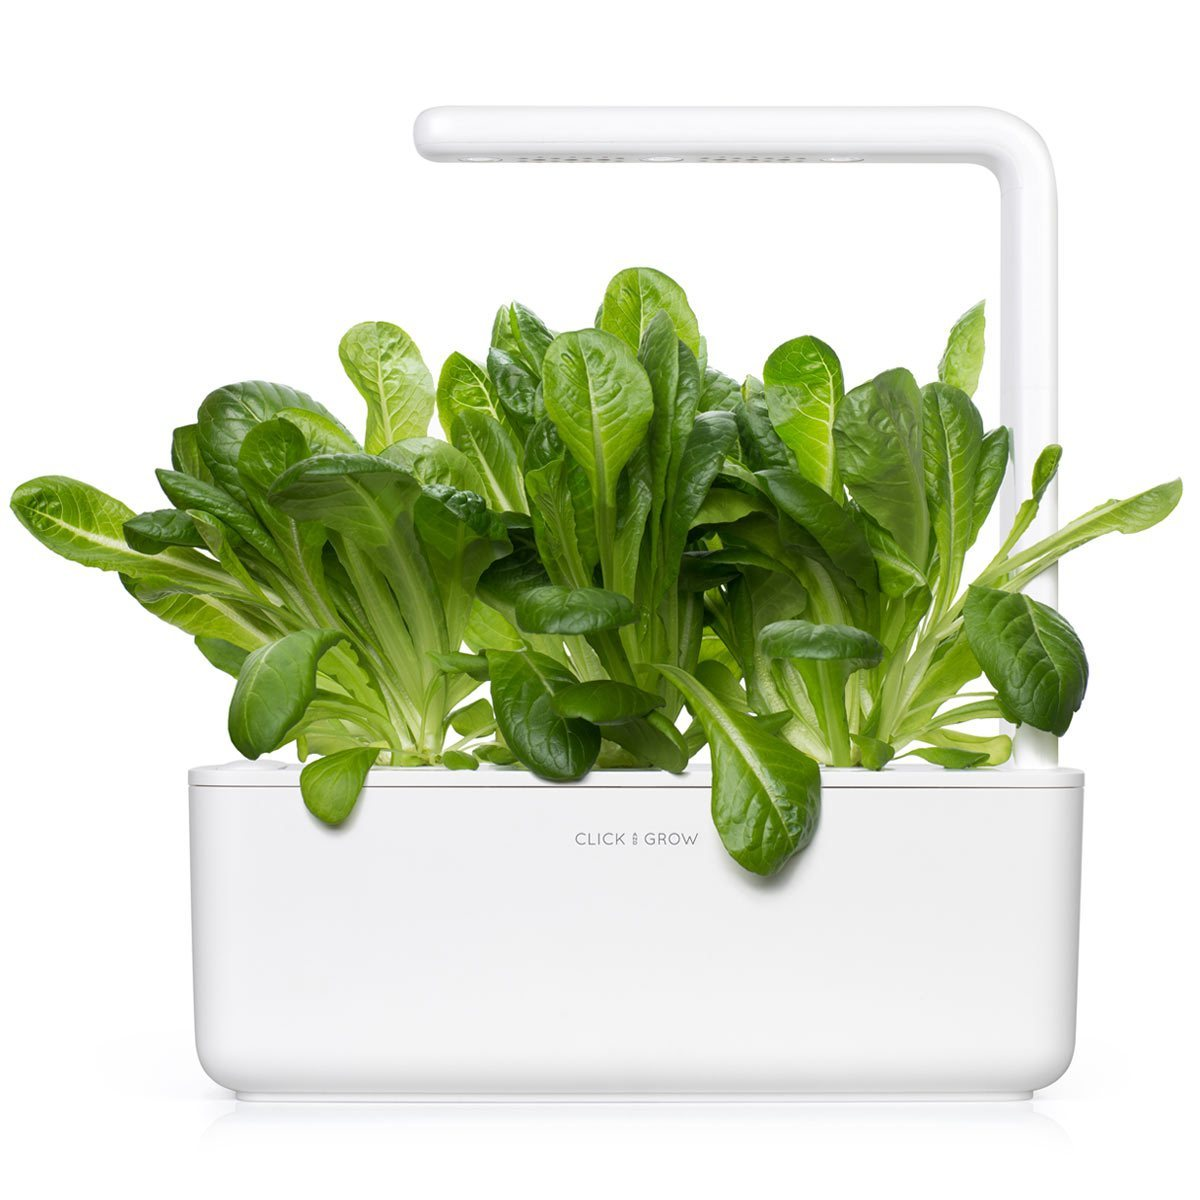 Romaine lettuce -grow lettuce at home - Click & Grow - indoor herb garden kit